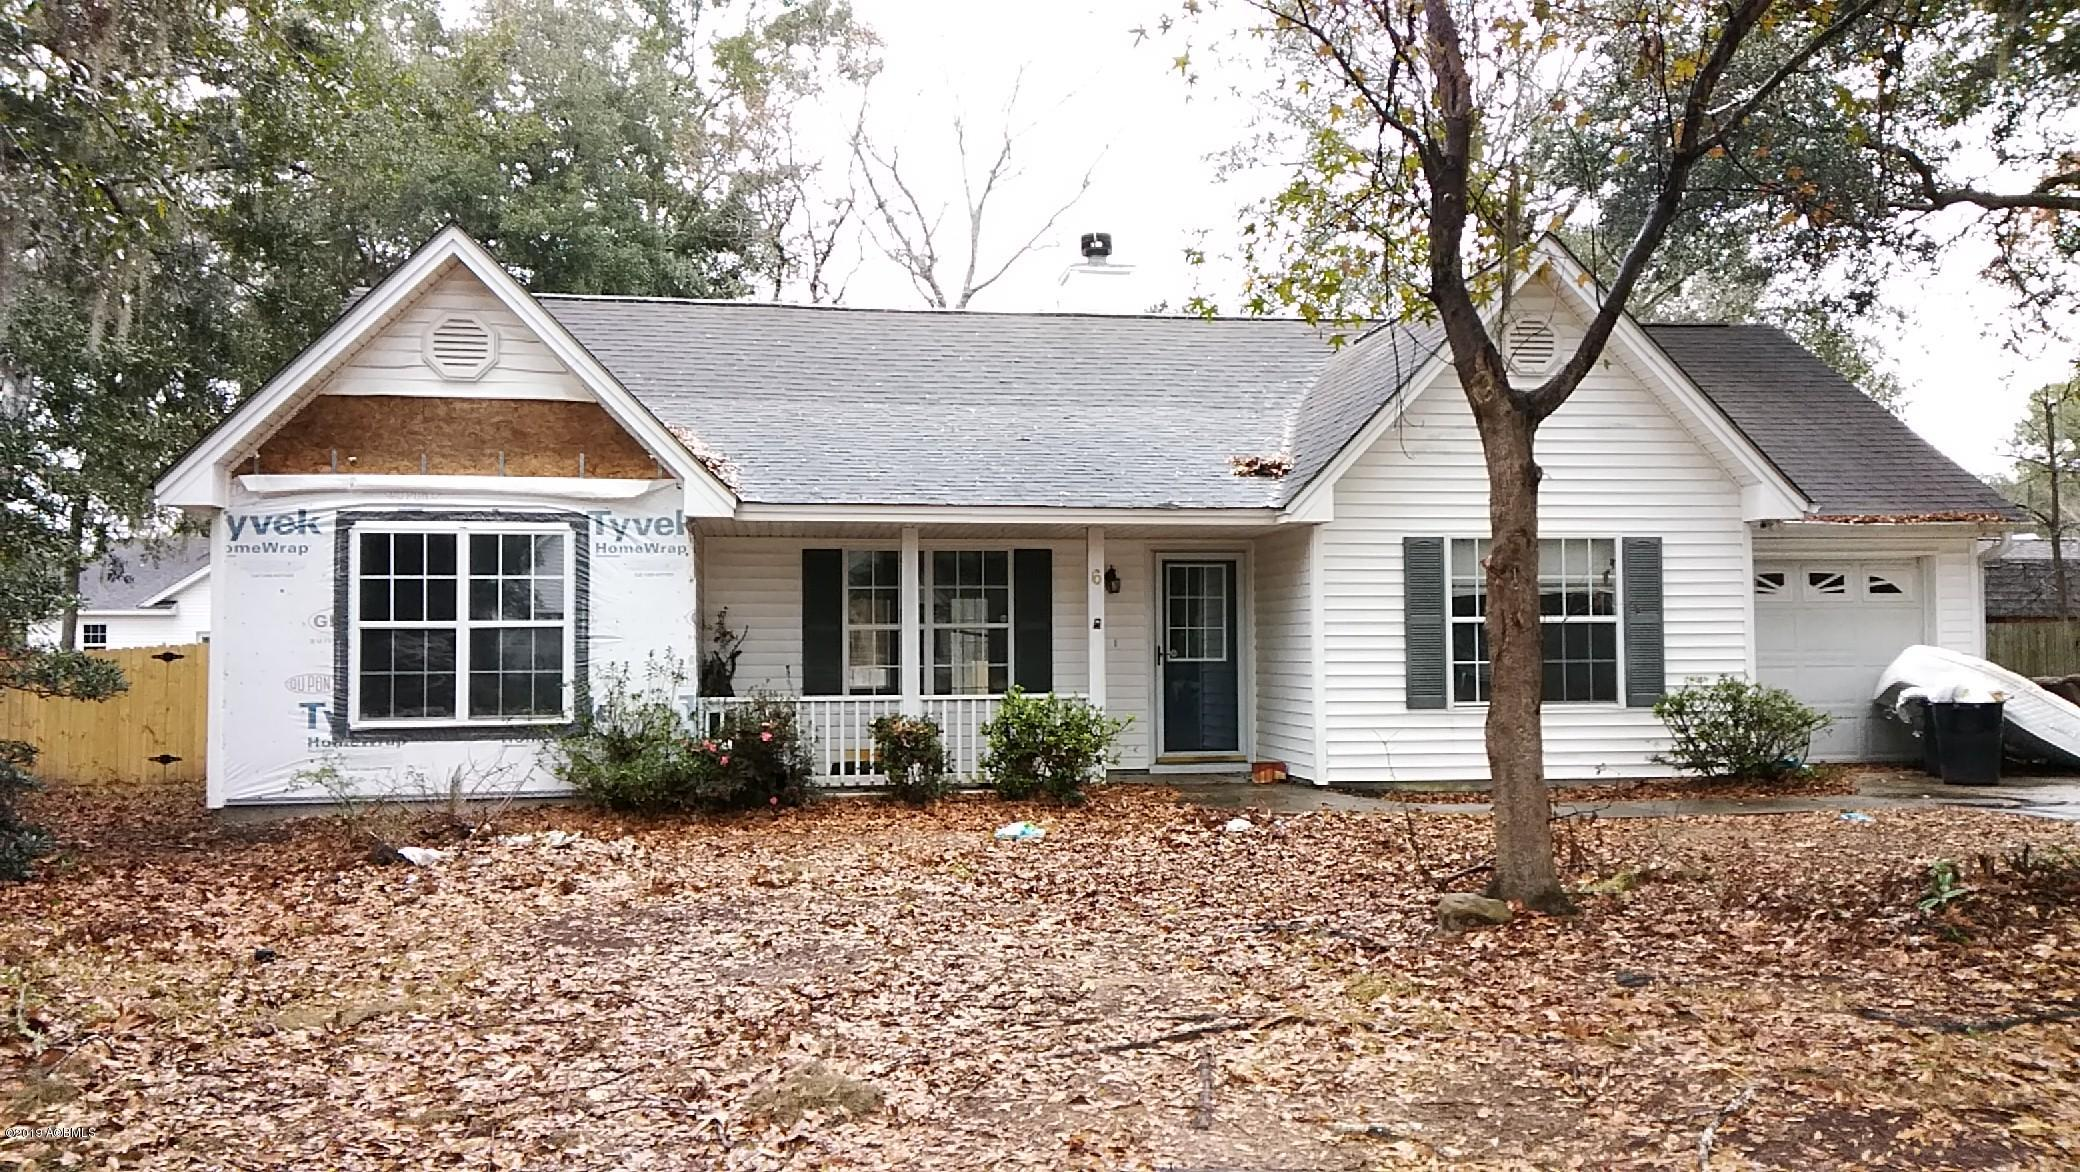 Photo of 6 Lucerne Avenue, Beaufort, SC 29907